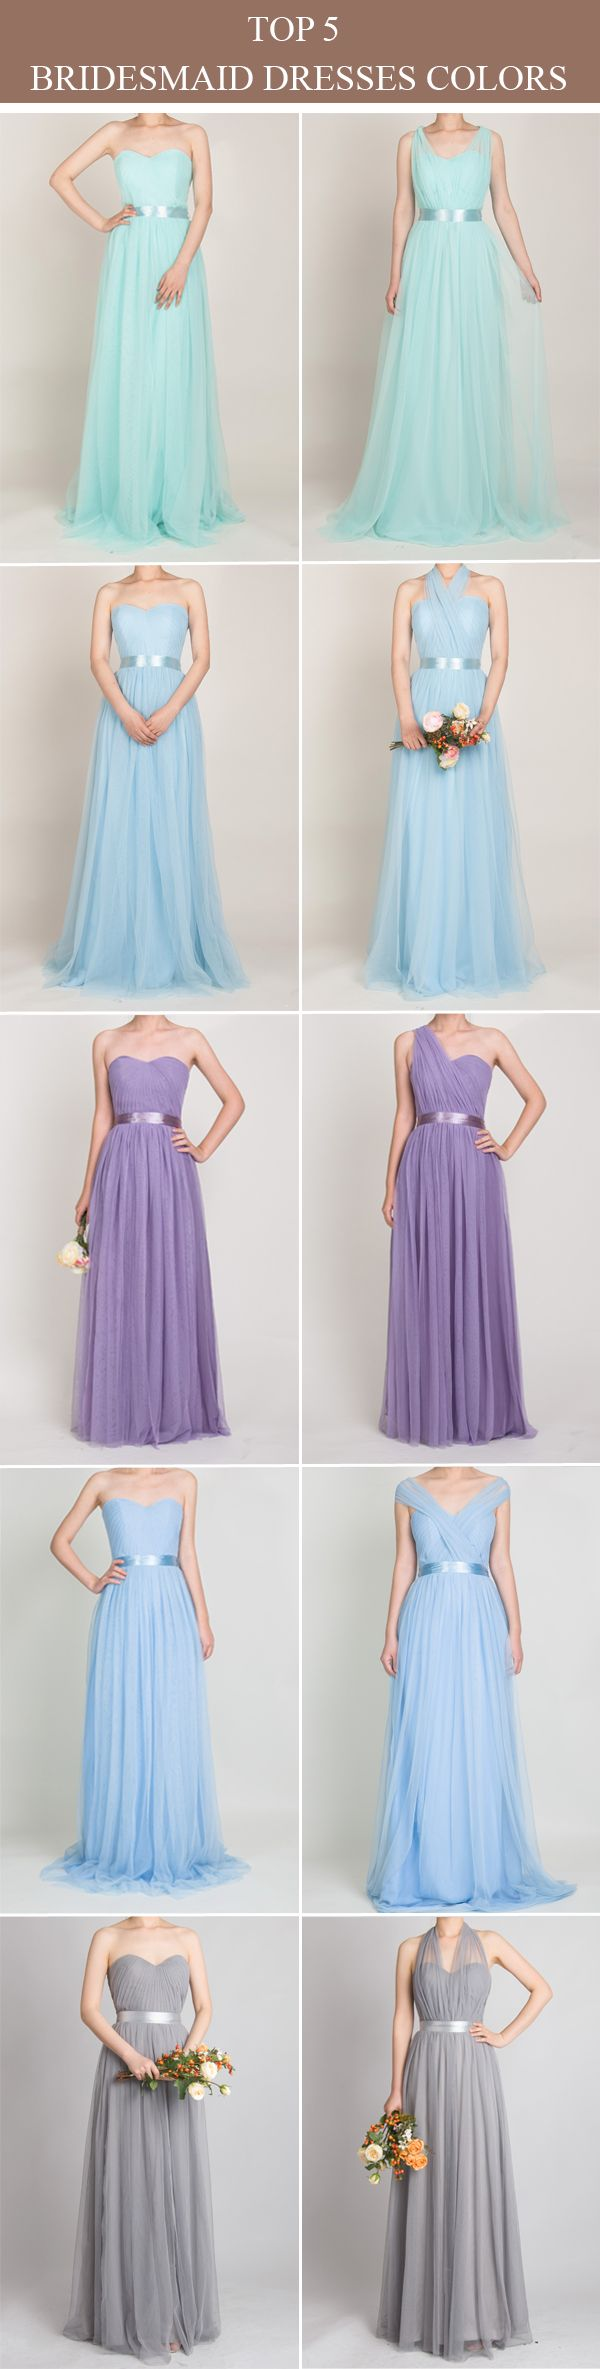 Tulle convertible multiwear bridesmaid dress tbqp mint blue